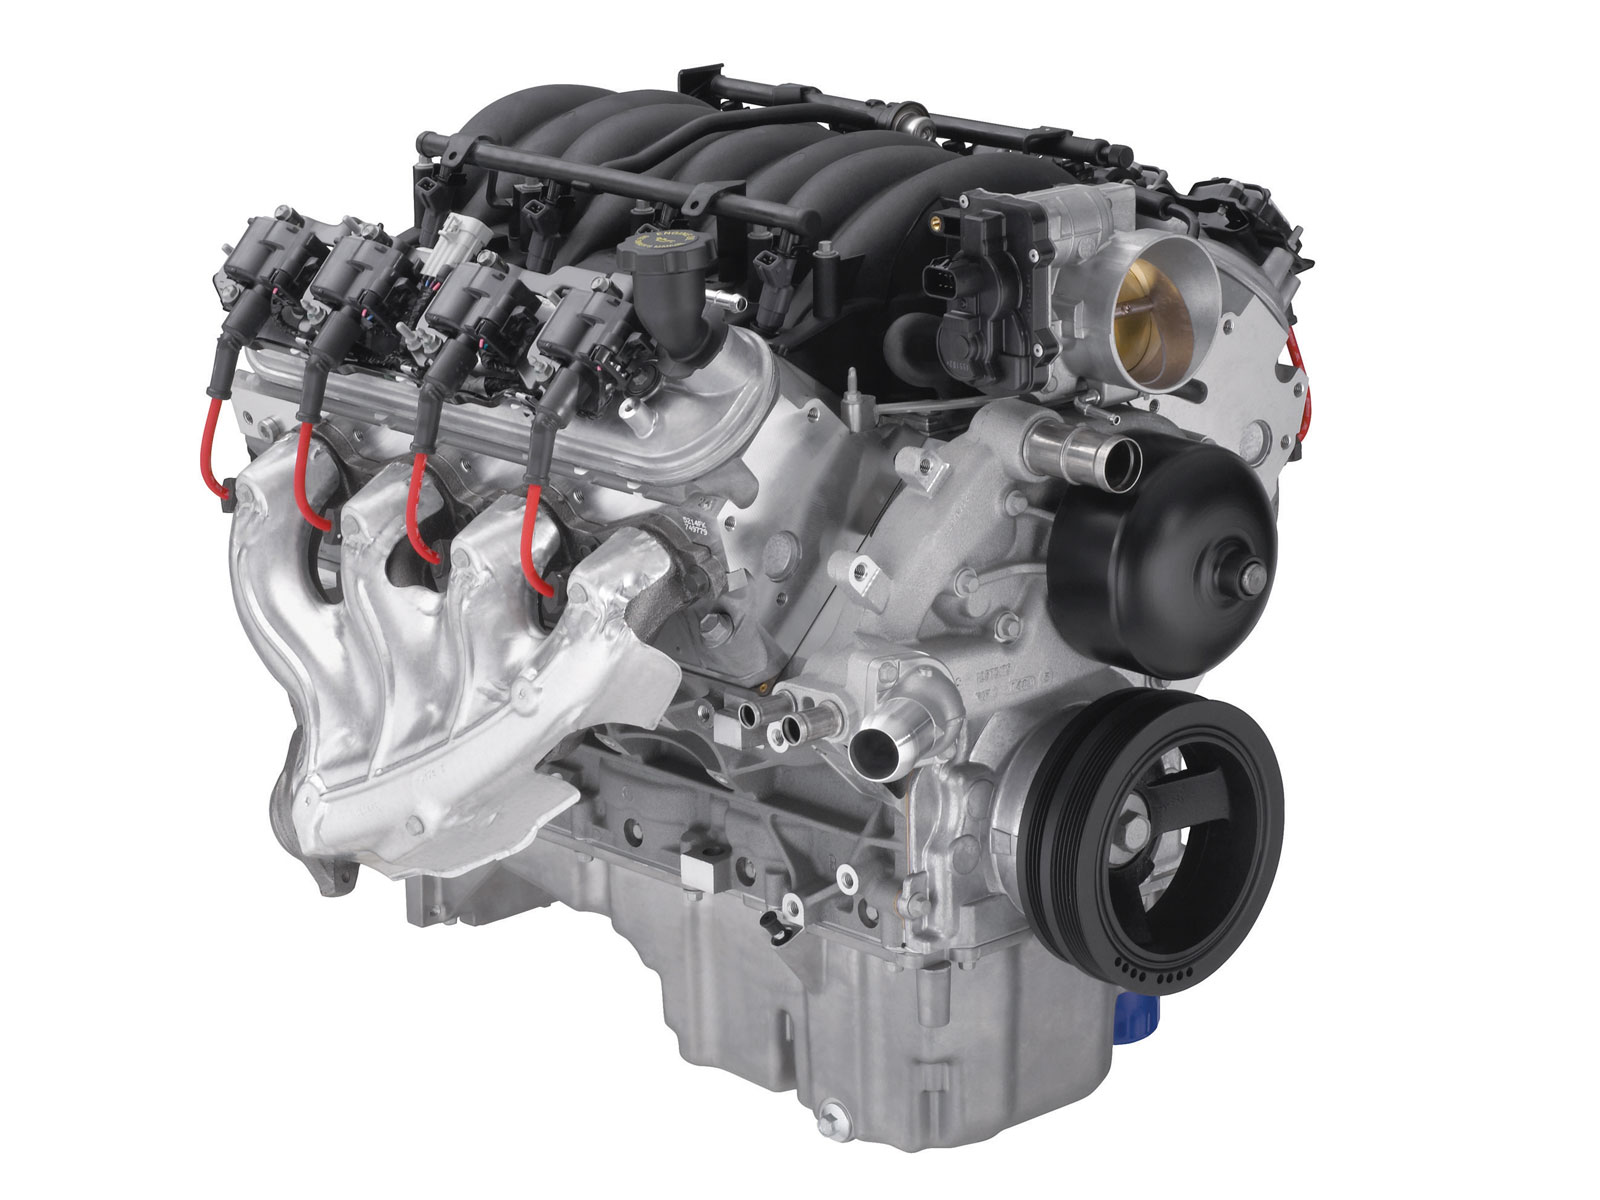 LS1 Crate Engine